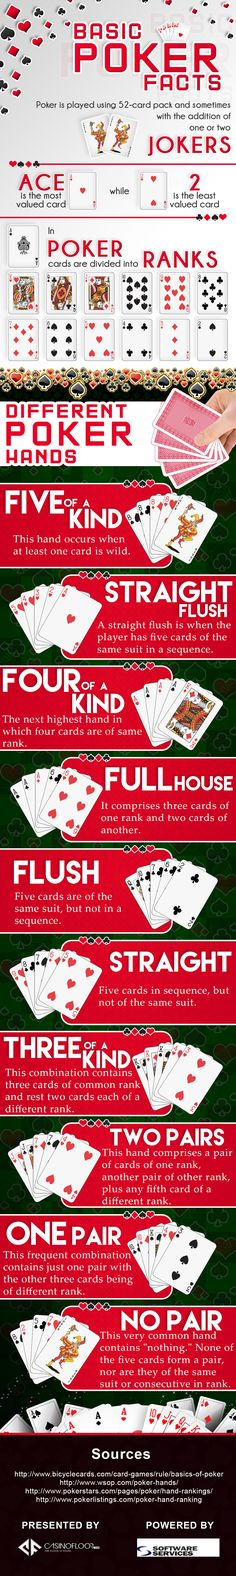 "The #Infographic titled ""Basic #Poker Facts,"" has been created by CasinoFloor.com with a big idea, giving a detailed information about this interesting card game, that is popularly played in all casinos worldwide. The following Infographic will helpful in educating new casino goers about some of the basic facts about poker game, that they might need to know."